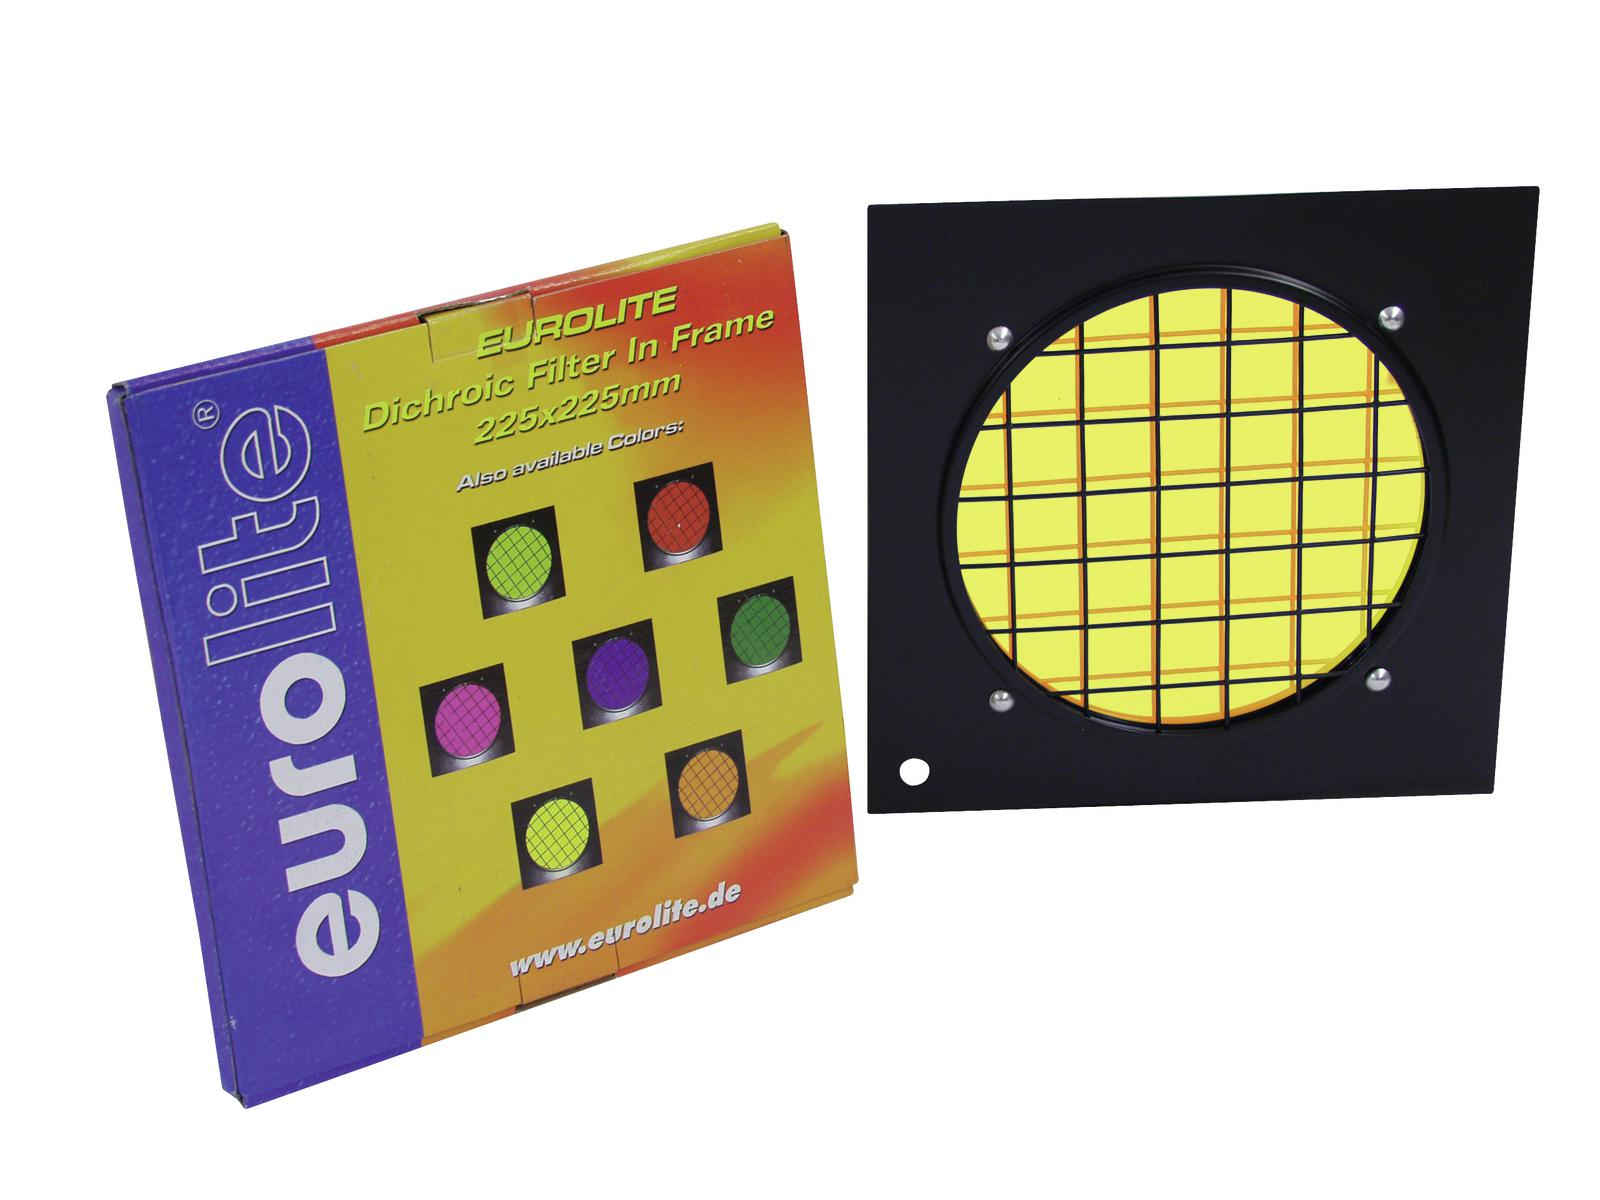 Filter, Dichroic, For PAR 56 profi-spot 225 x 225 mm EUROLITE Yellow